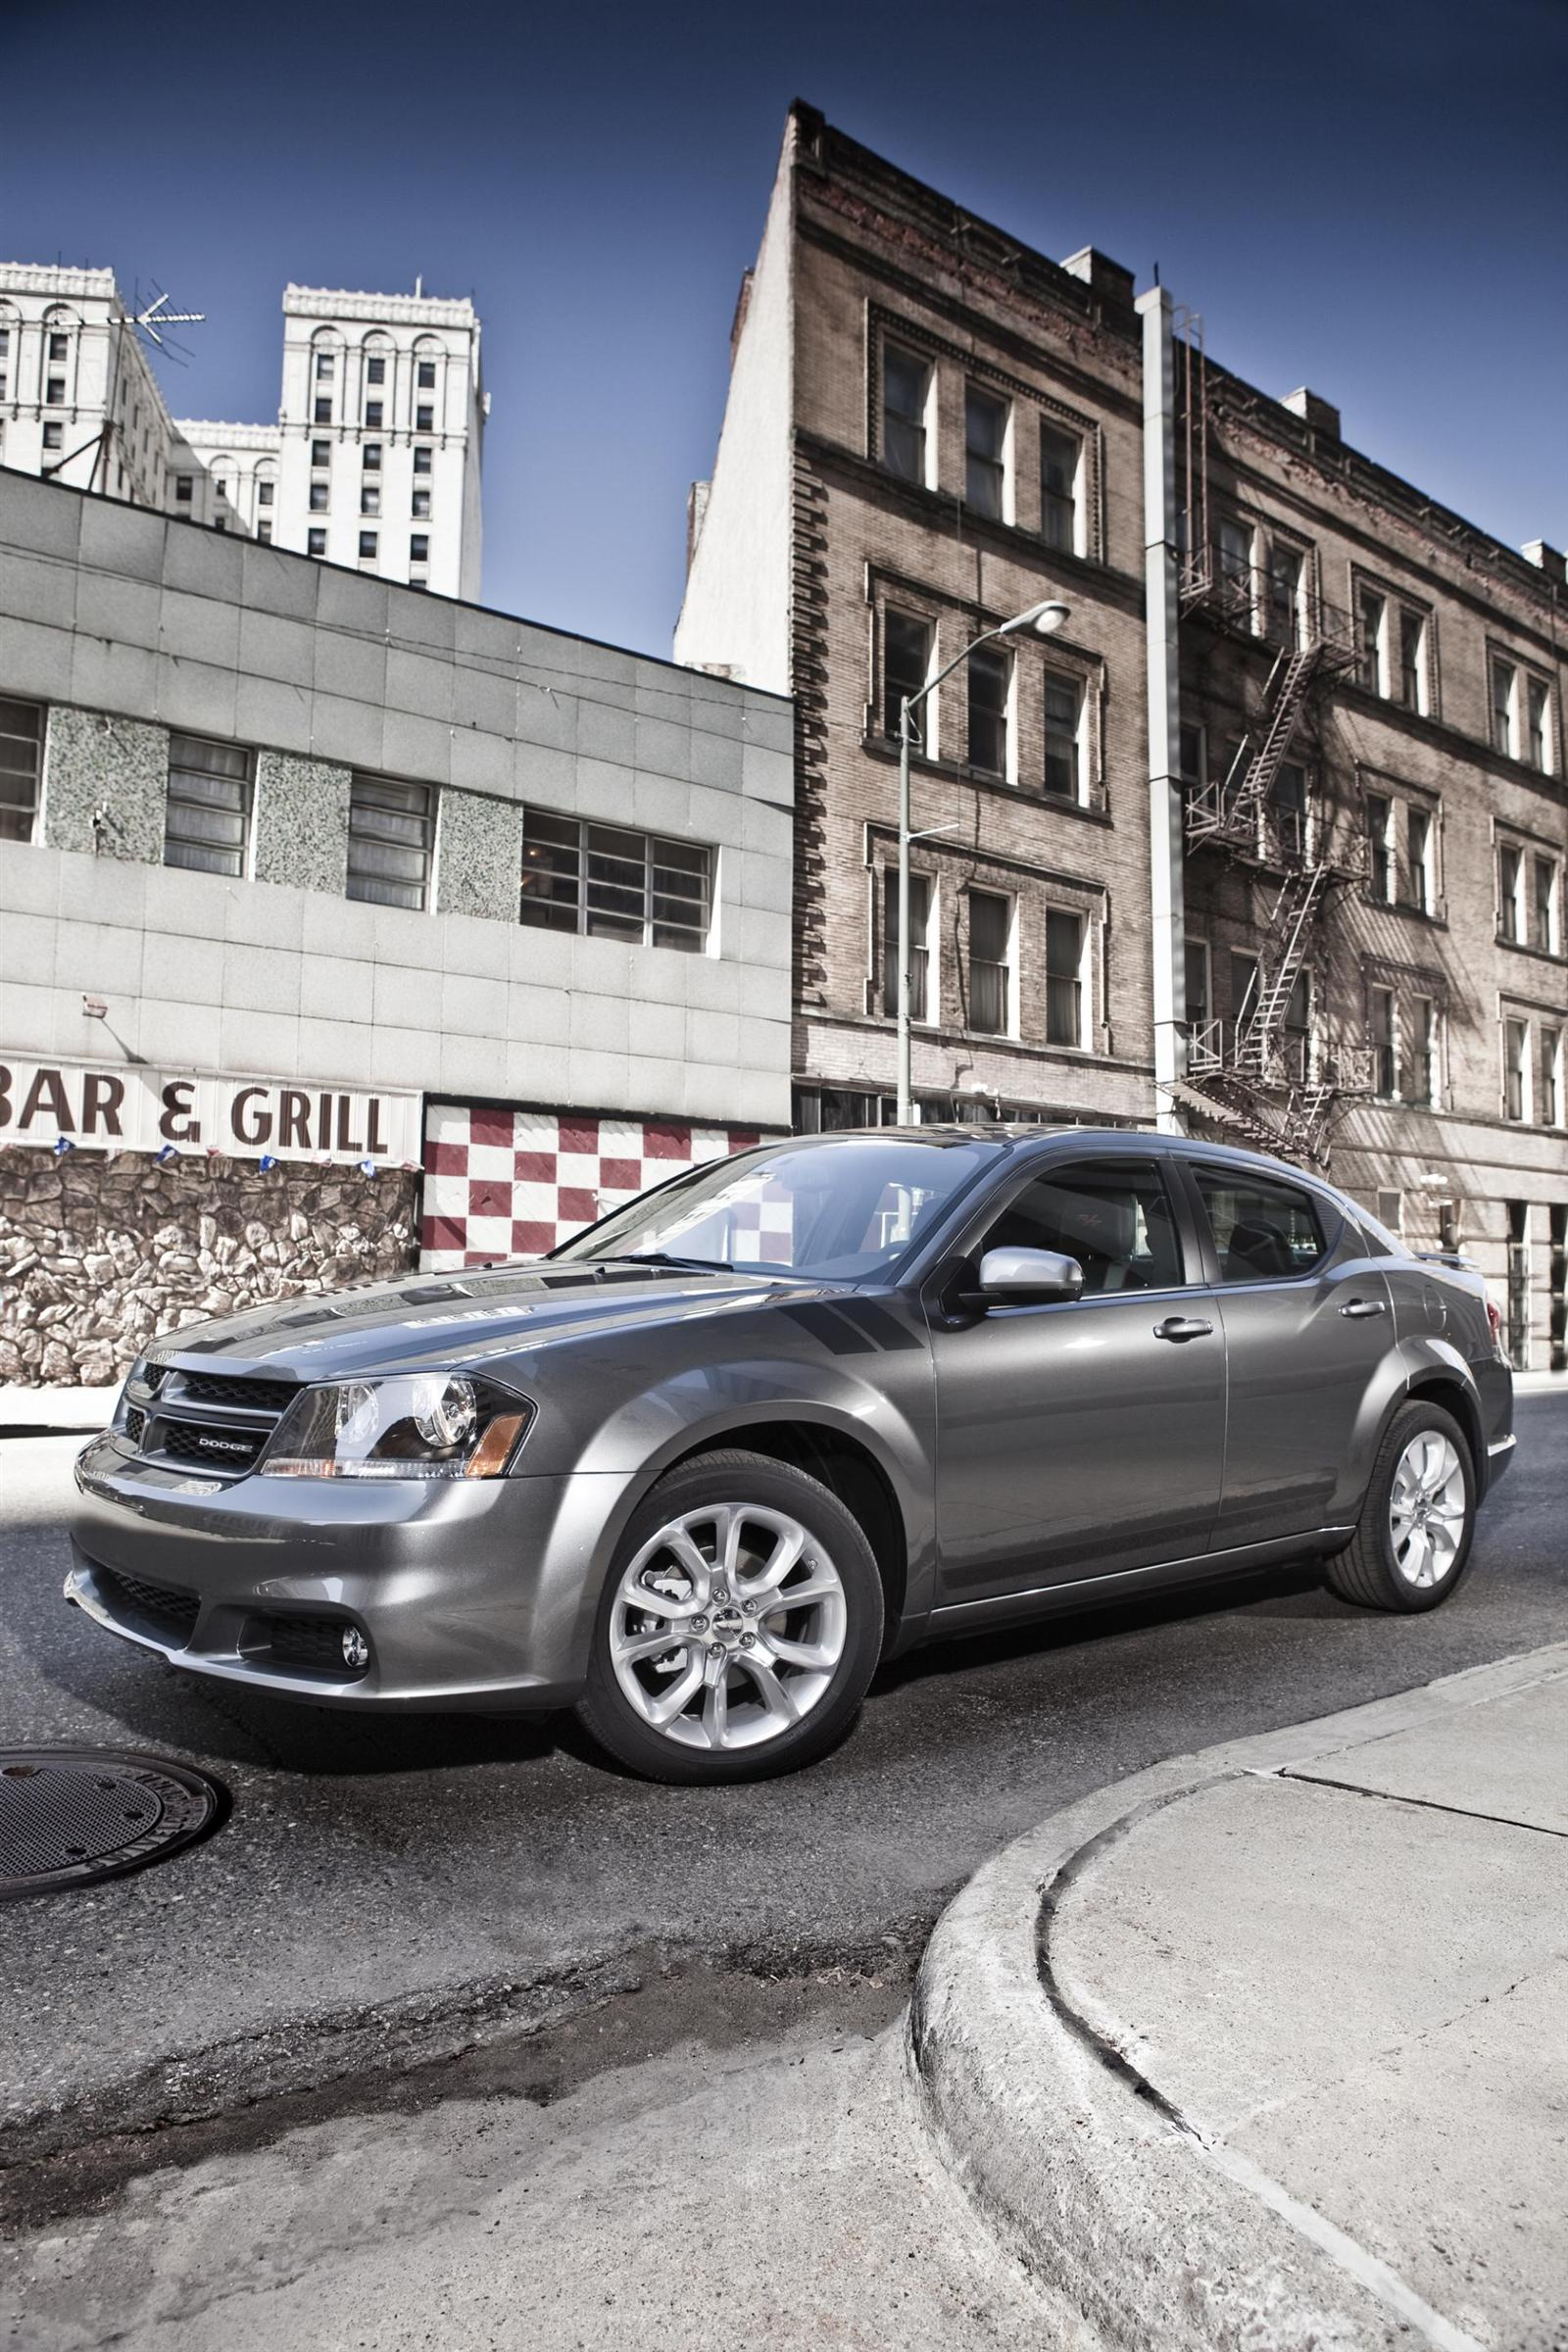 Dodge Avenger: Electronic vehicle information center (evic) – if equipped